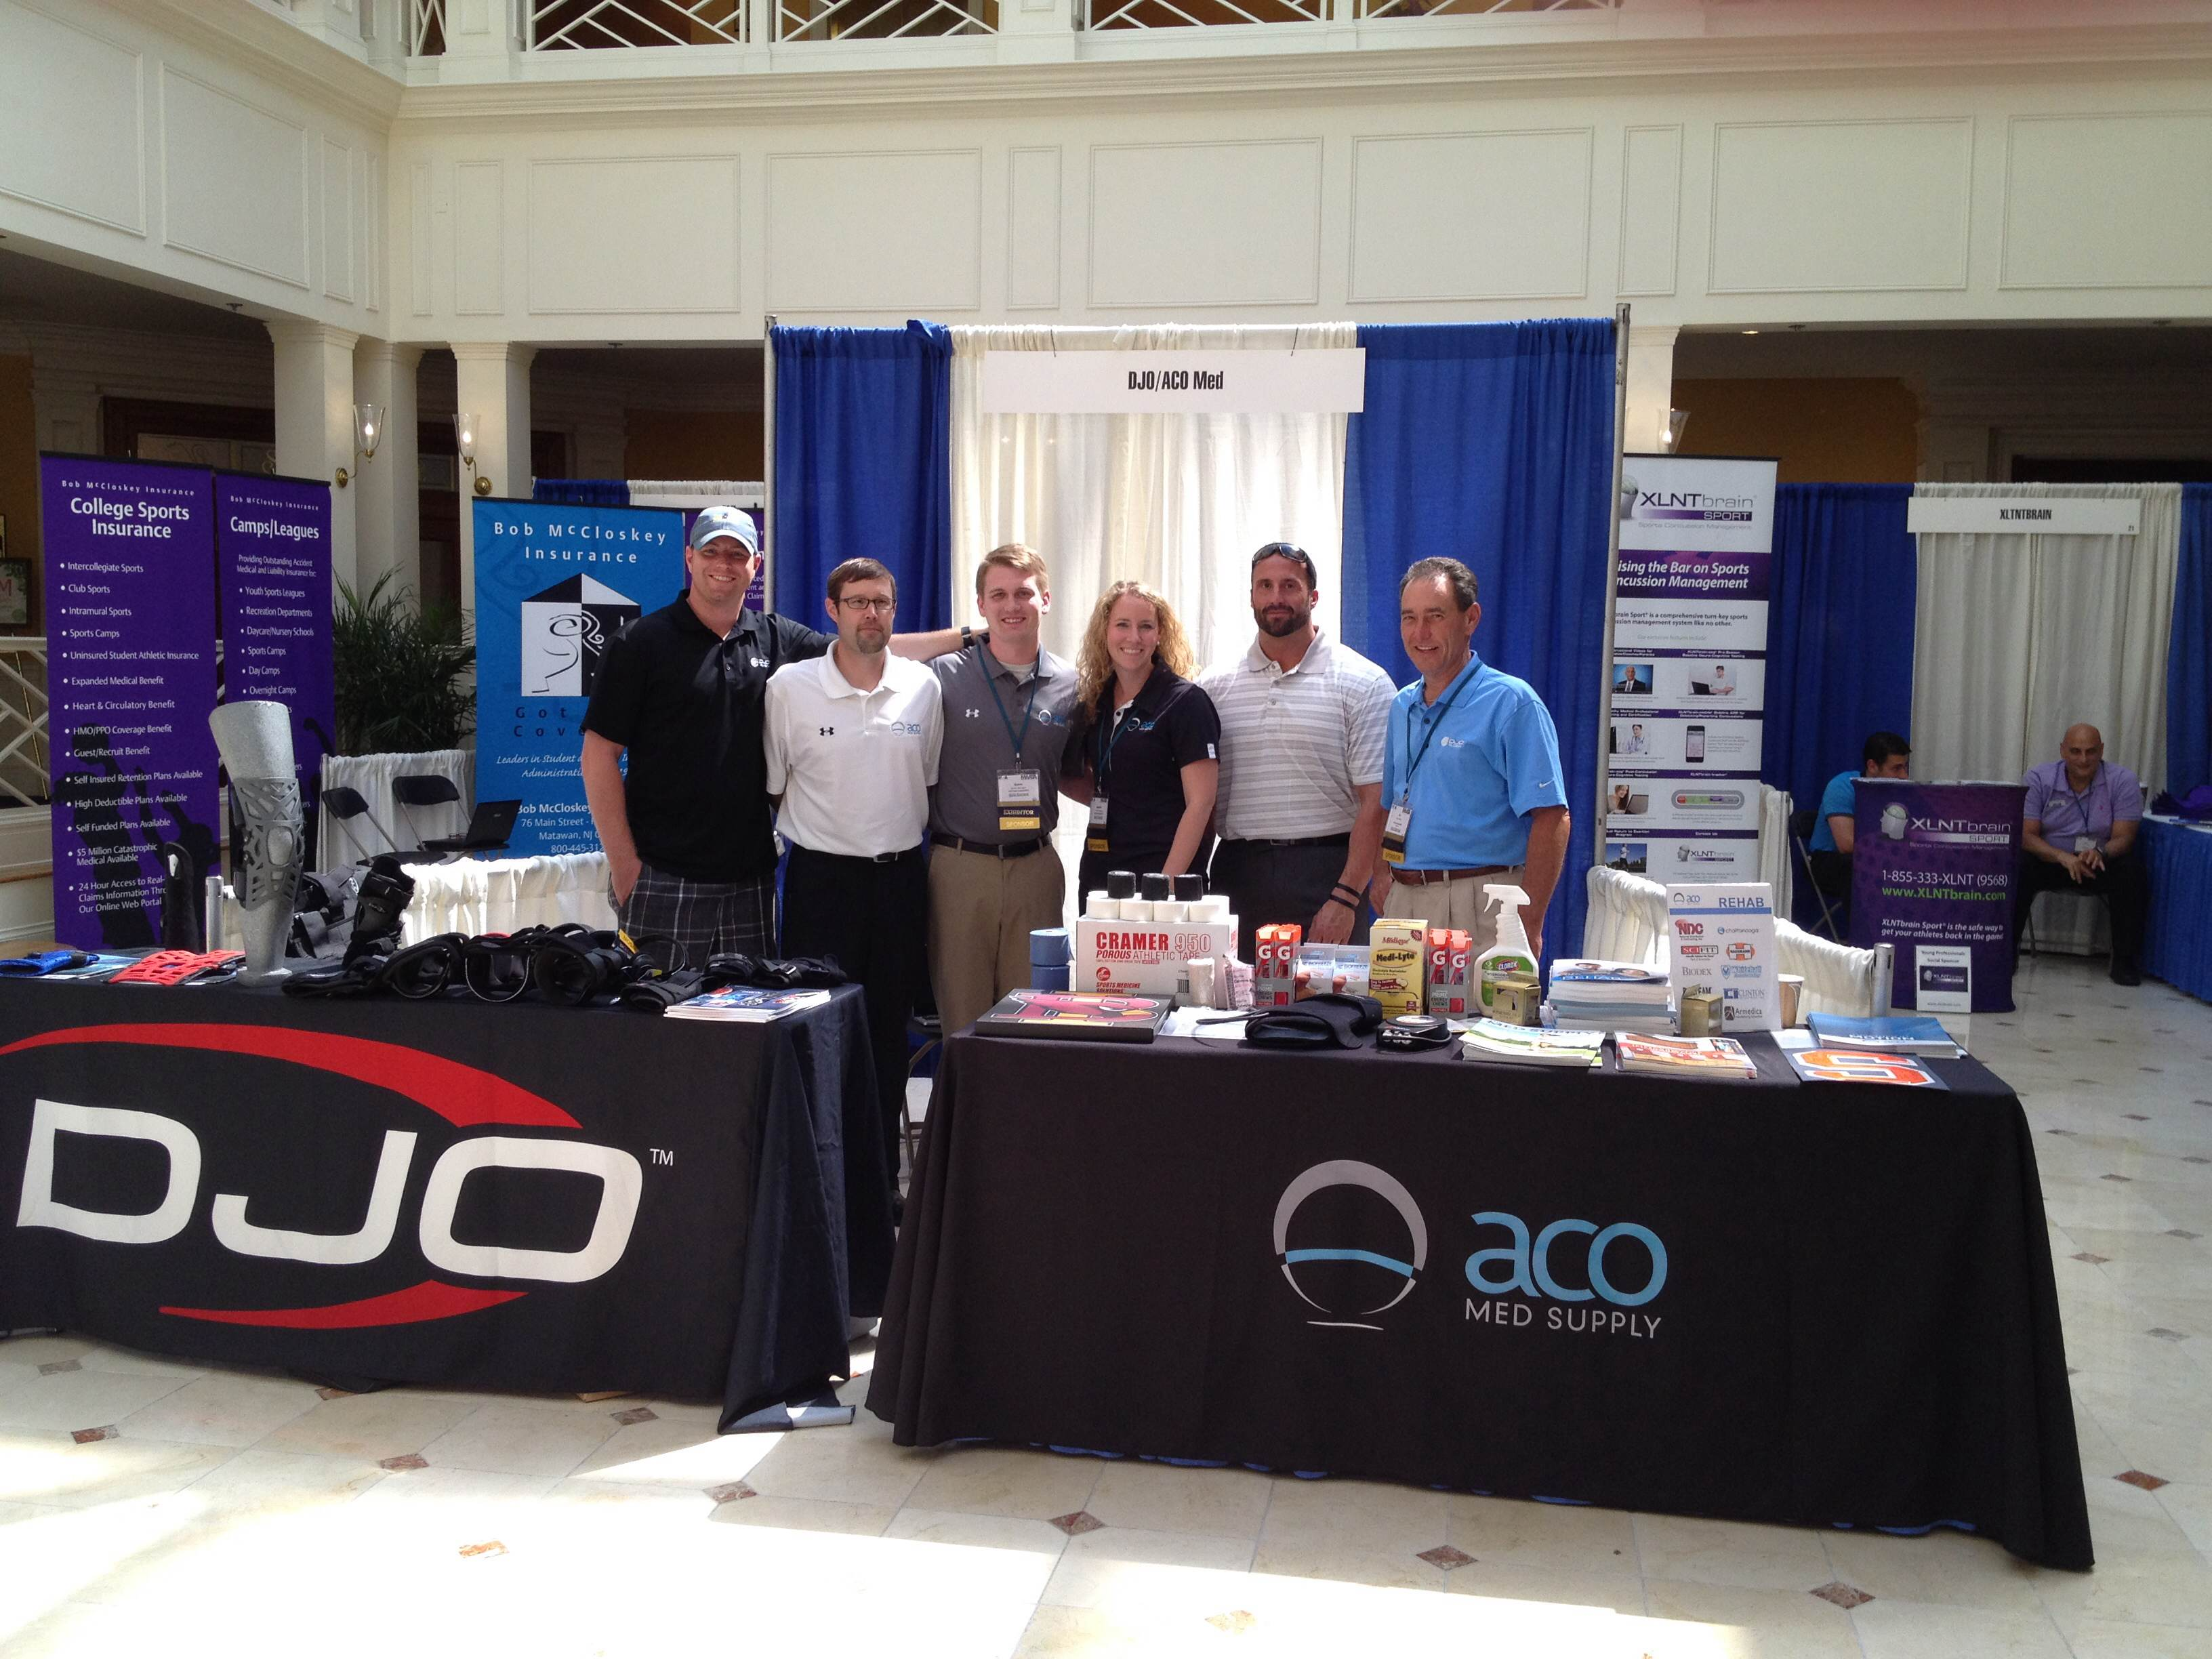 About Us – Aco Med Supply, Inc